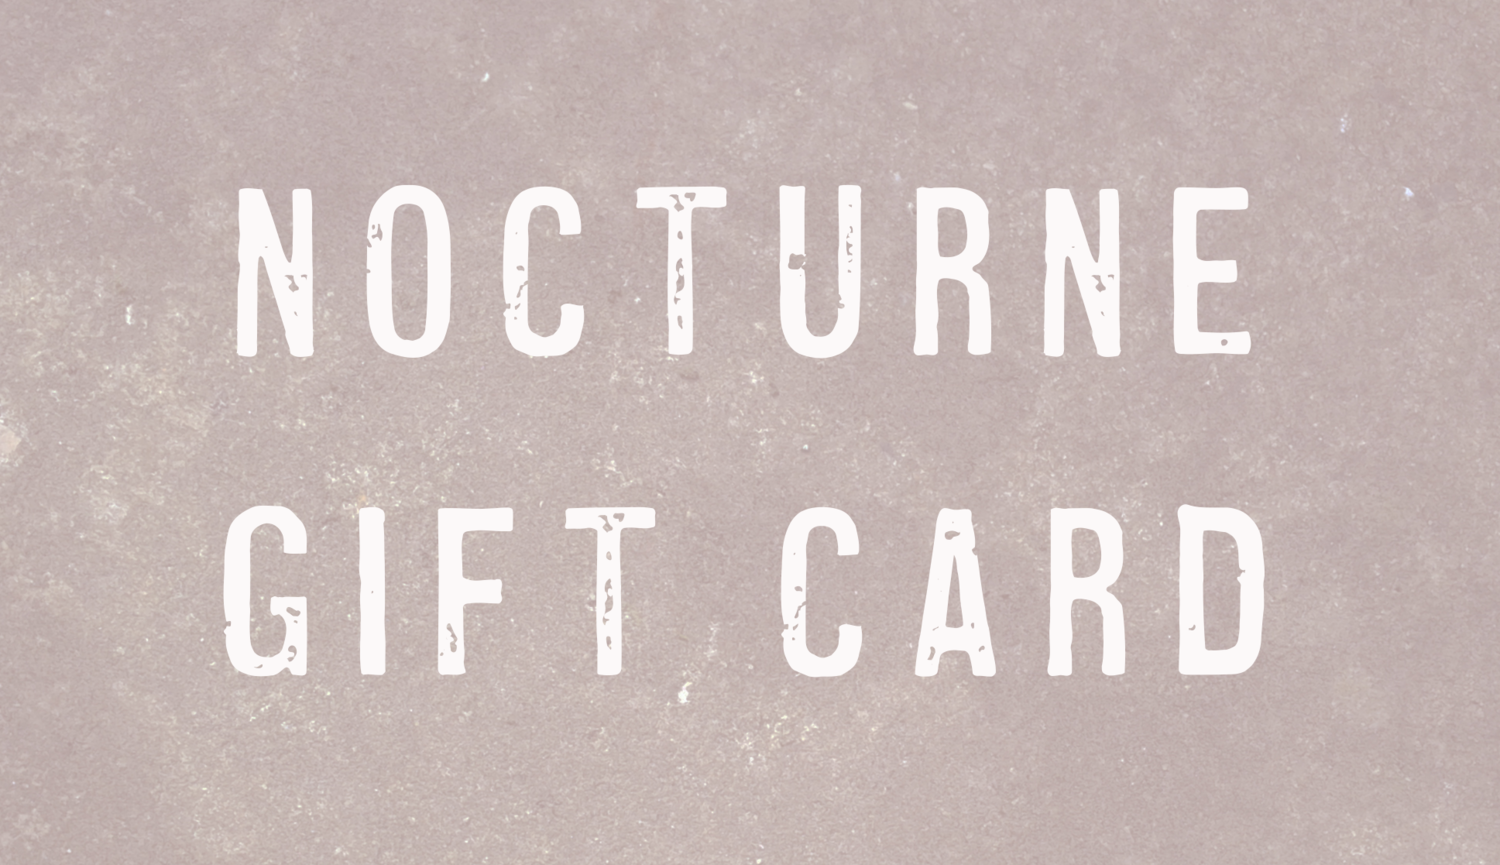 Official Nocturne Album Merch Gift Card